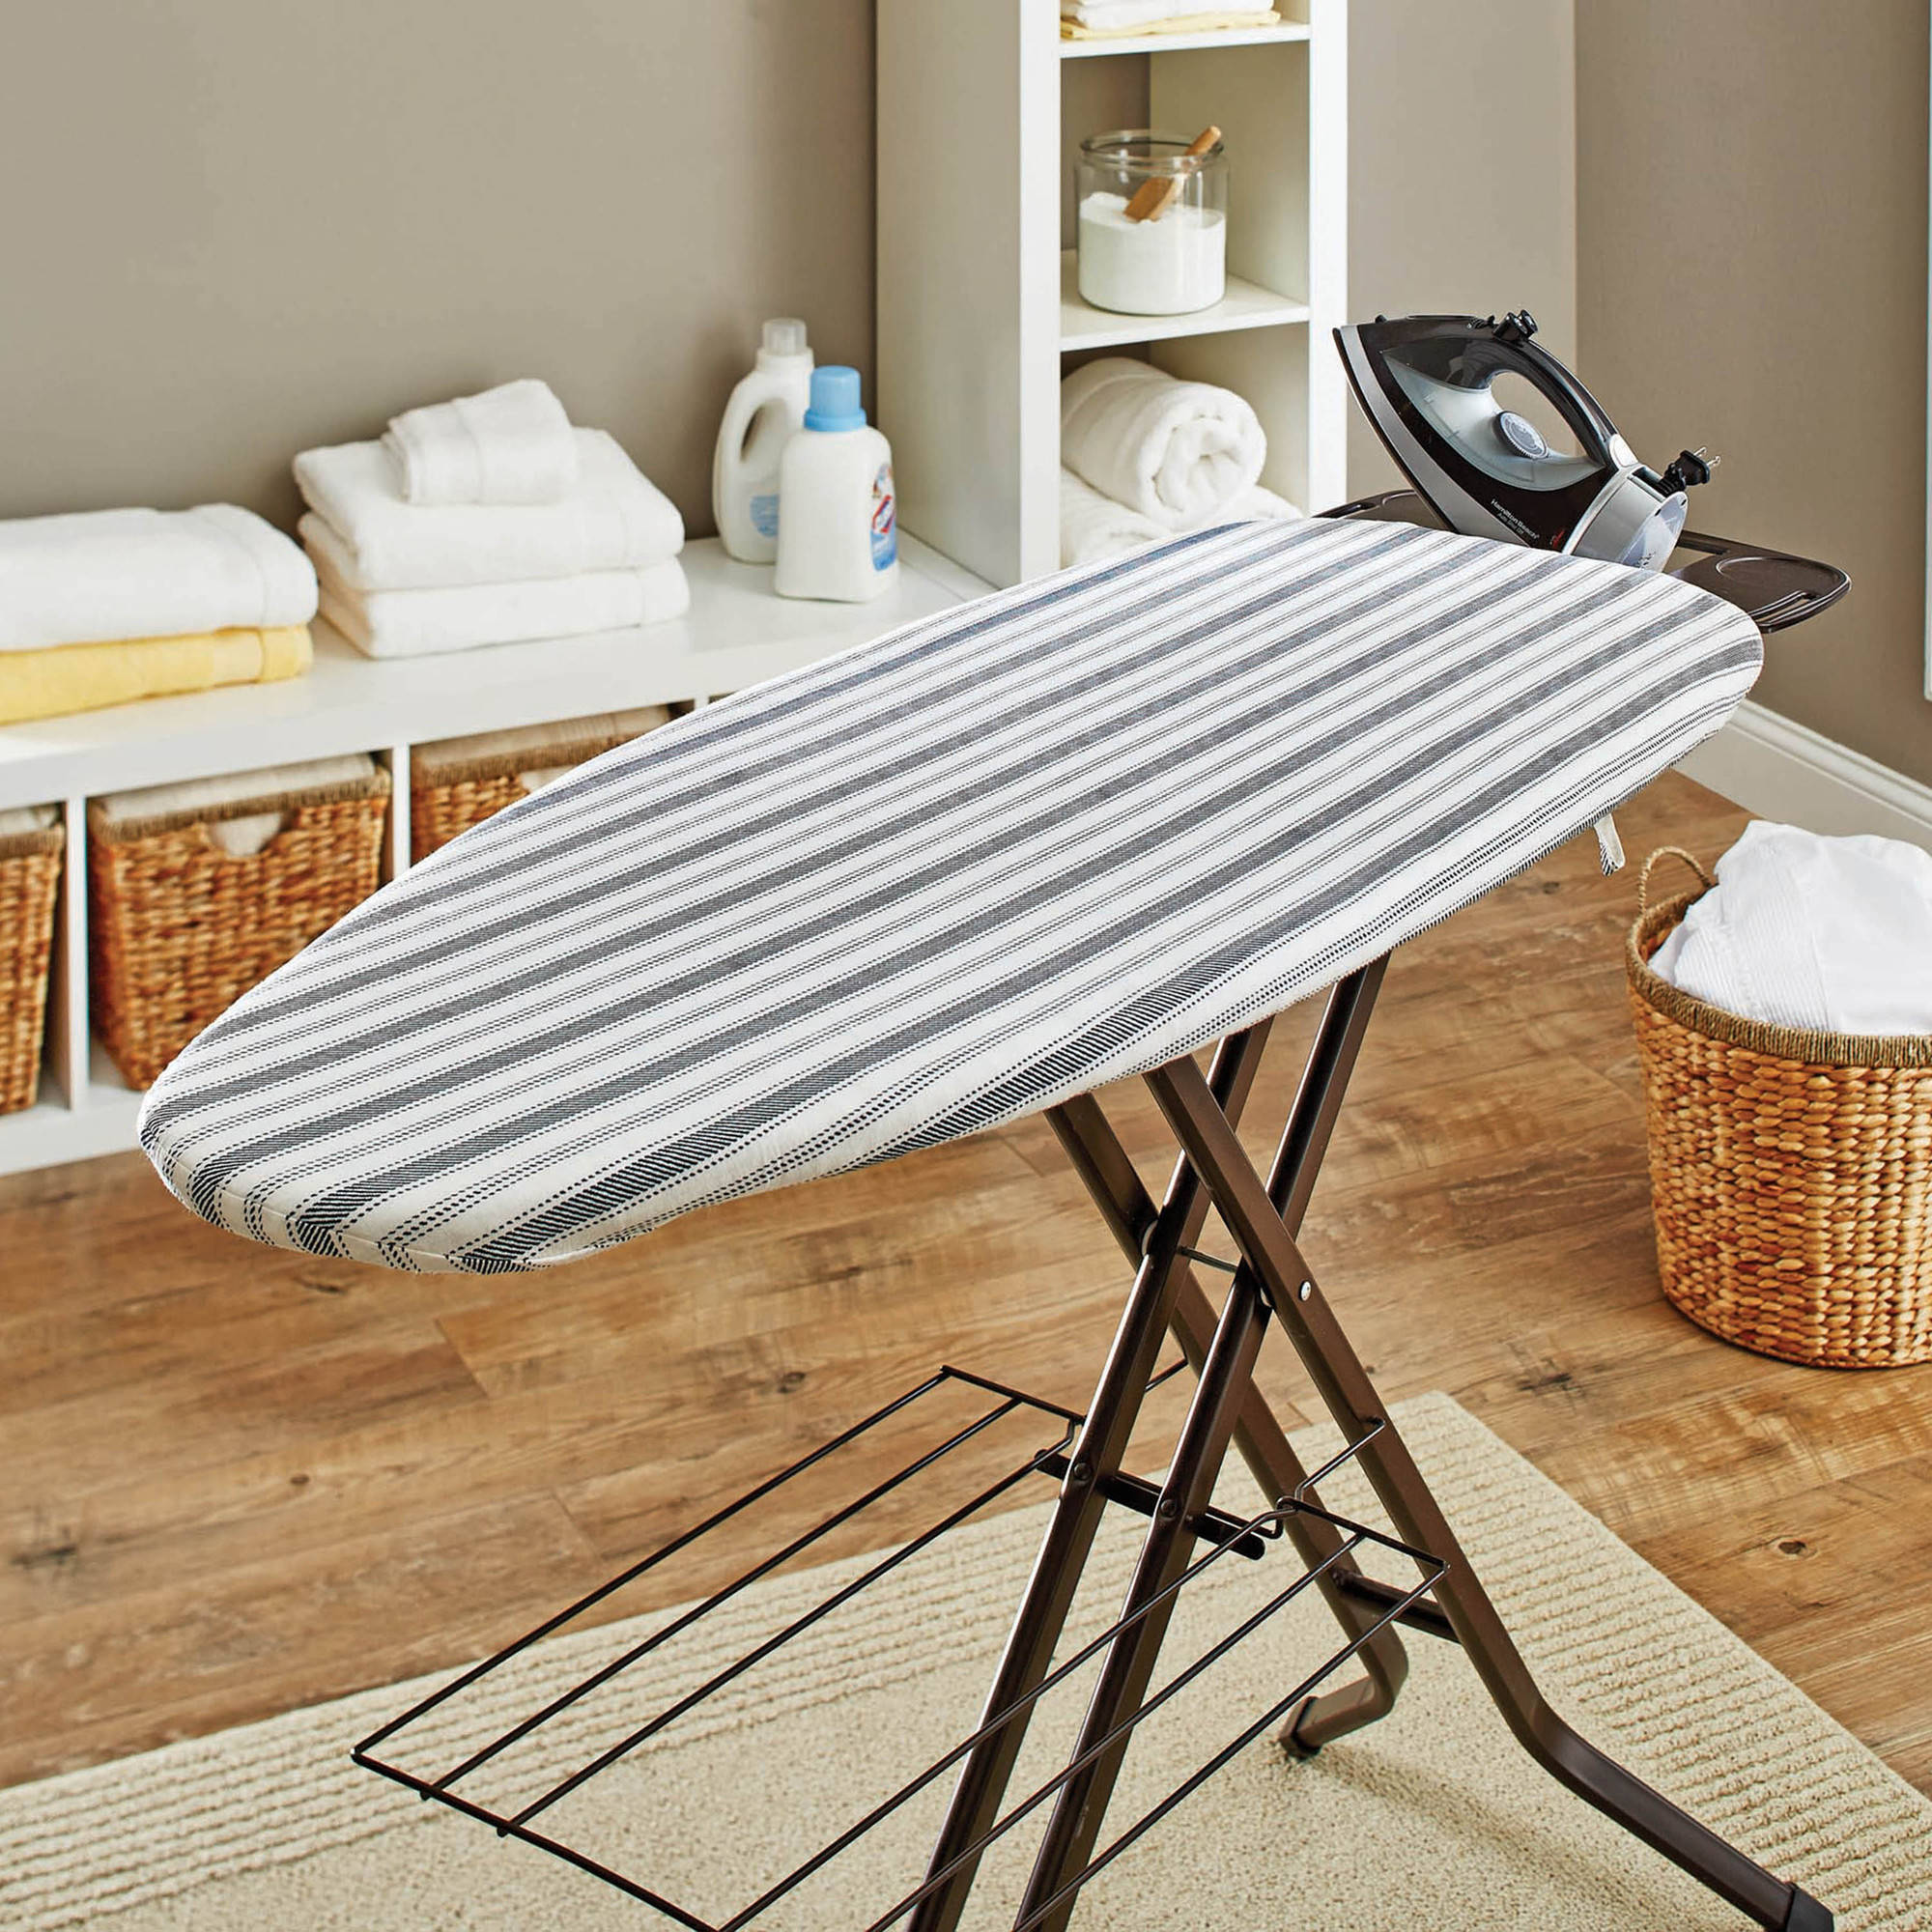 Better Homes and Gardens Wide Top Ironing Board Pad and Cover, Ticking Stripe